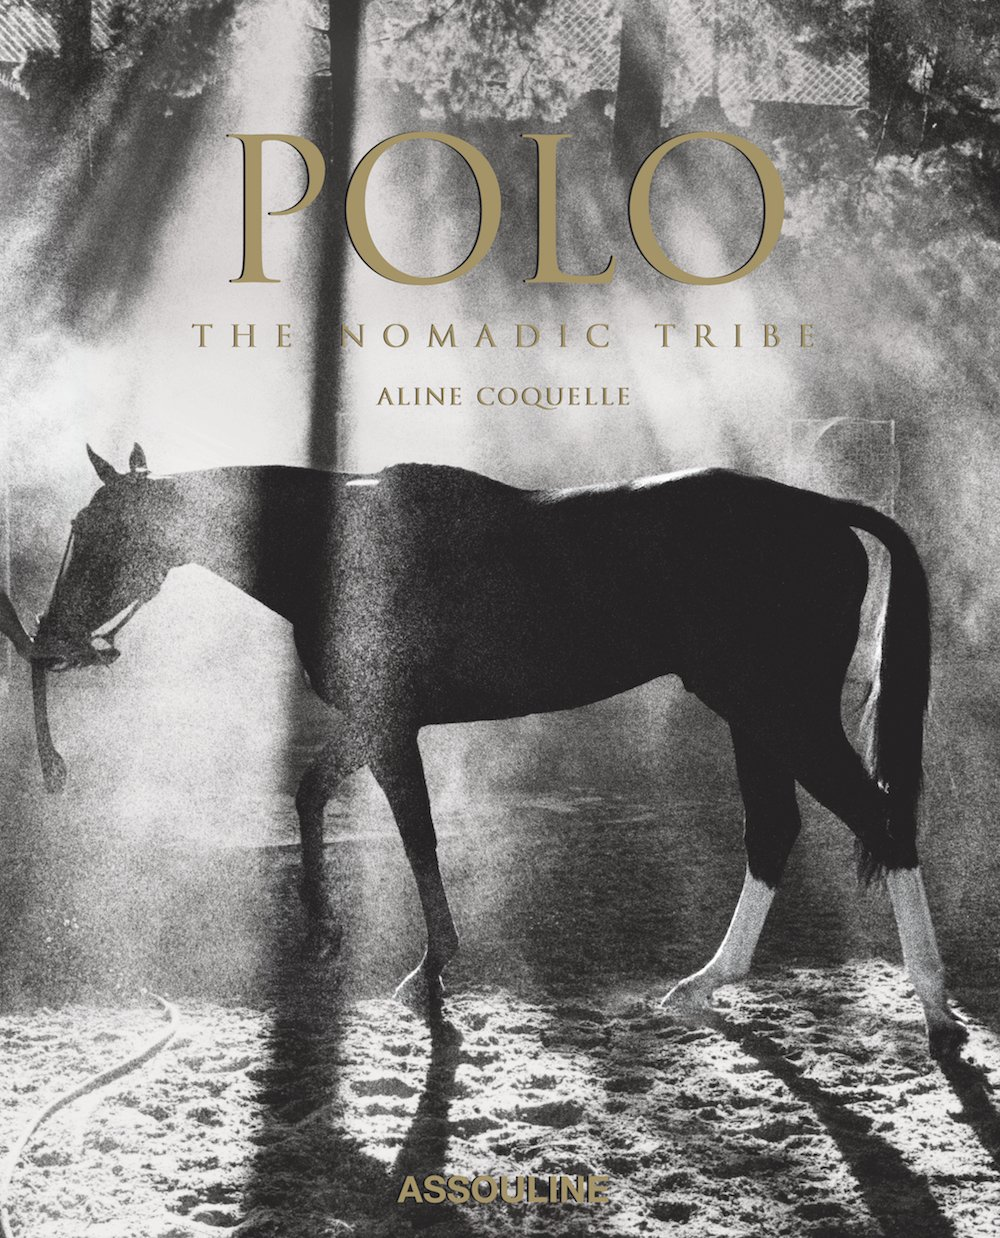 Polo: The Nomadic Tribe (Trade)